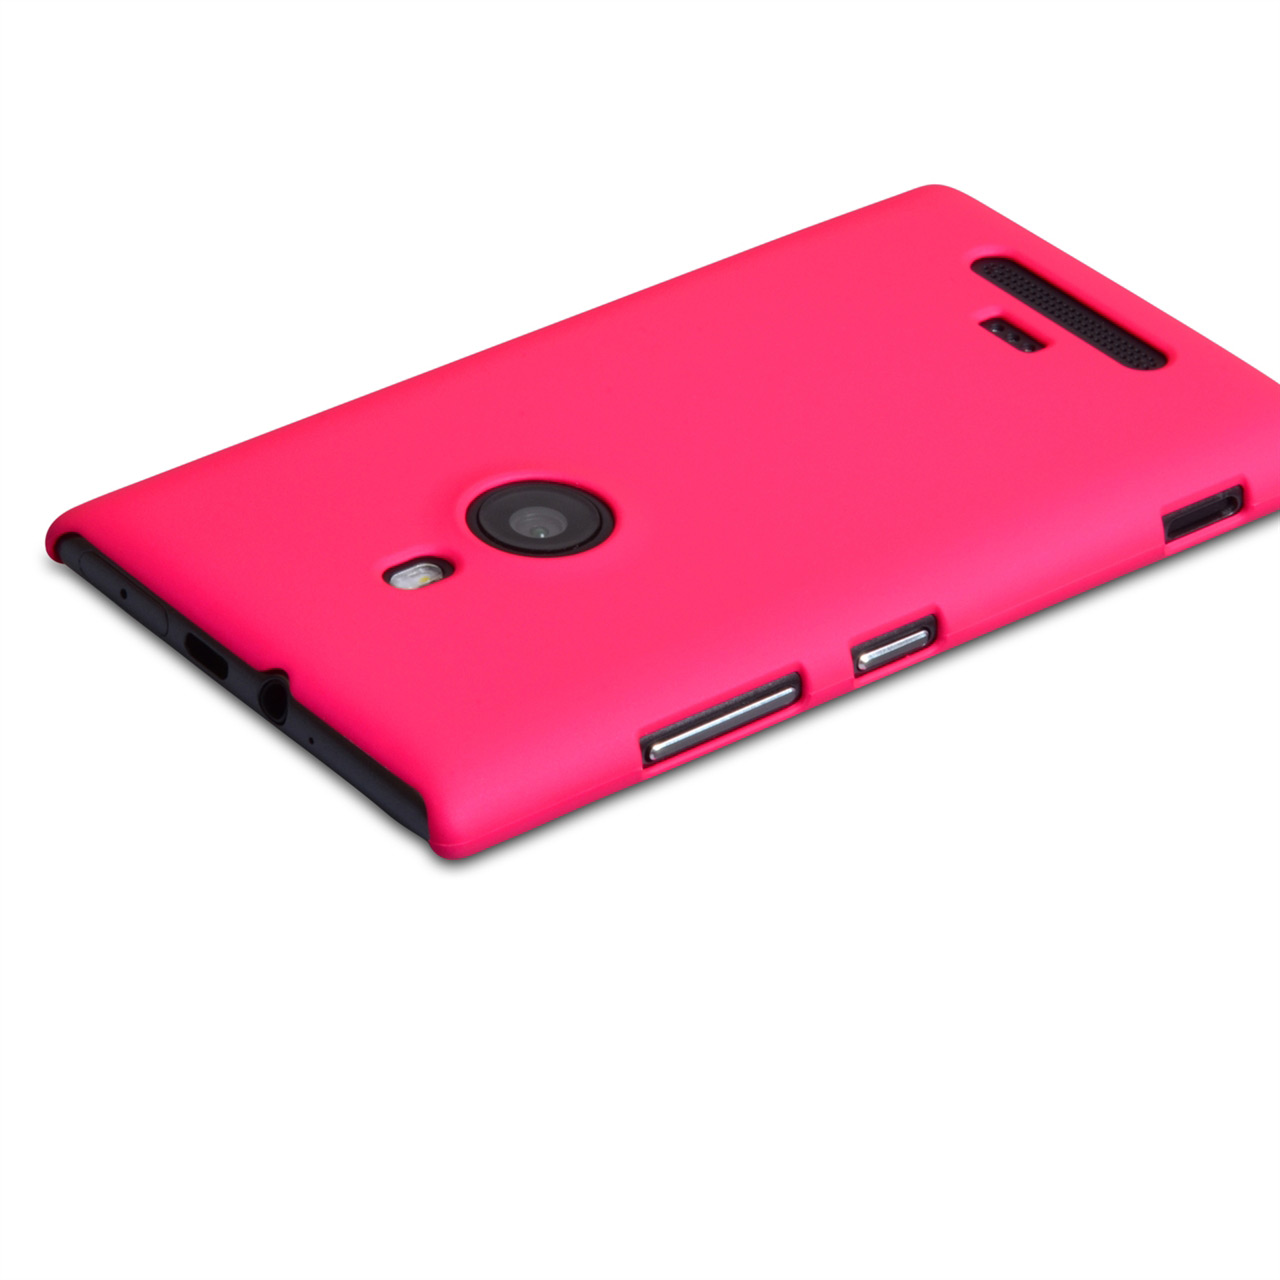 YouSave Accessories Nokia Lumia 925 Hard Hybrid Case - Hot Pink